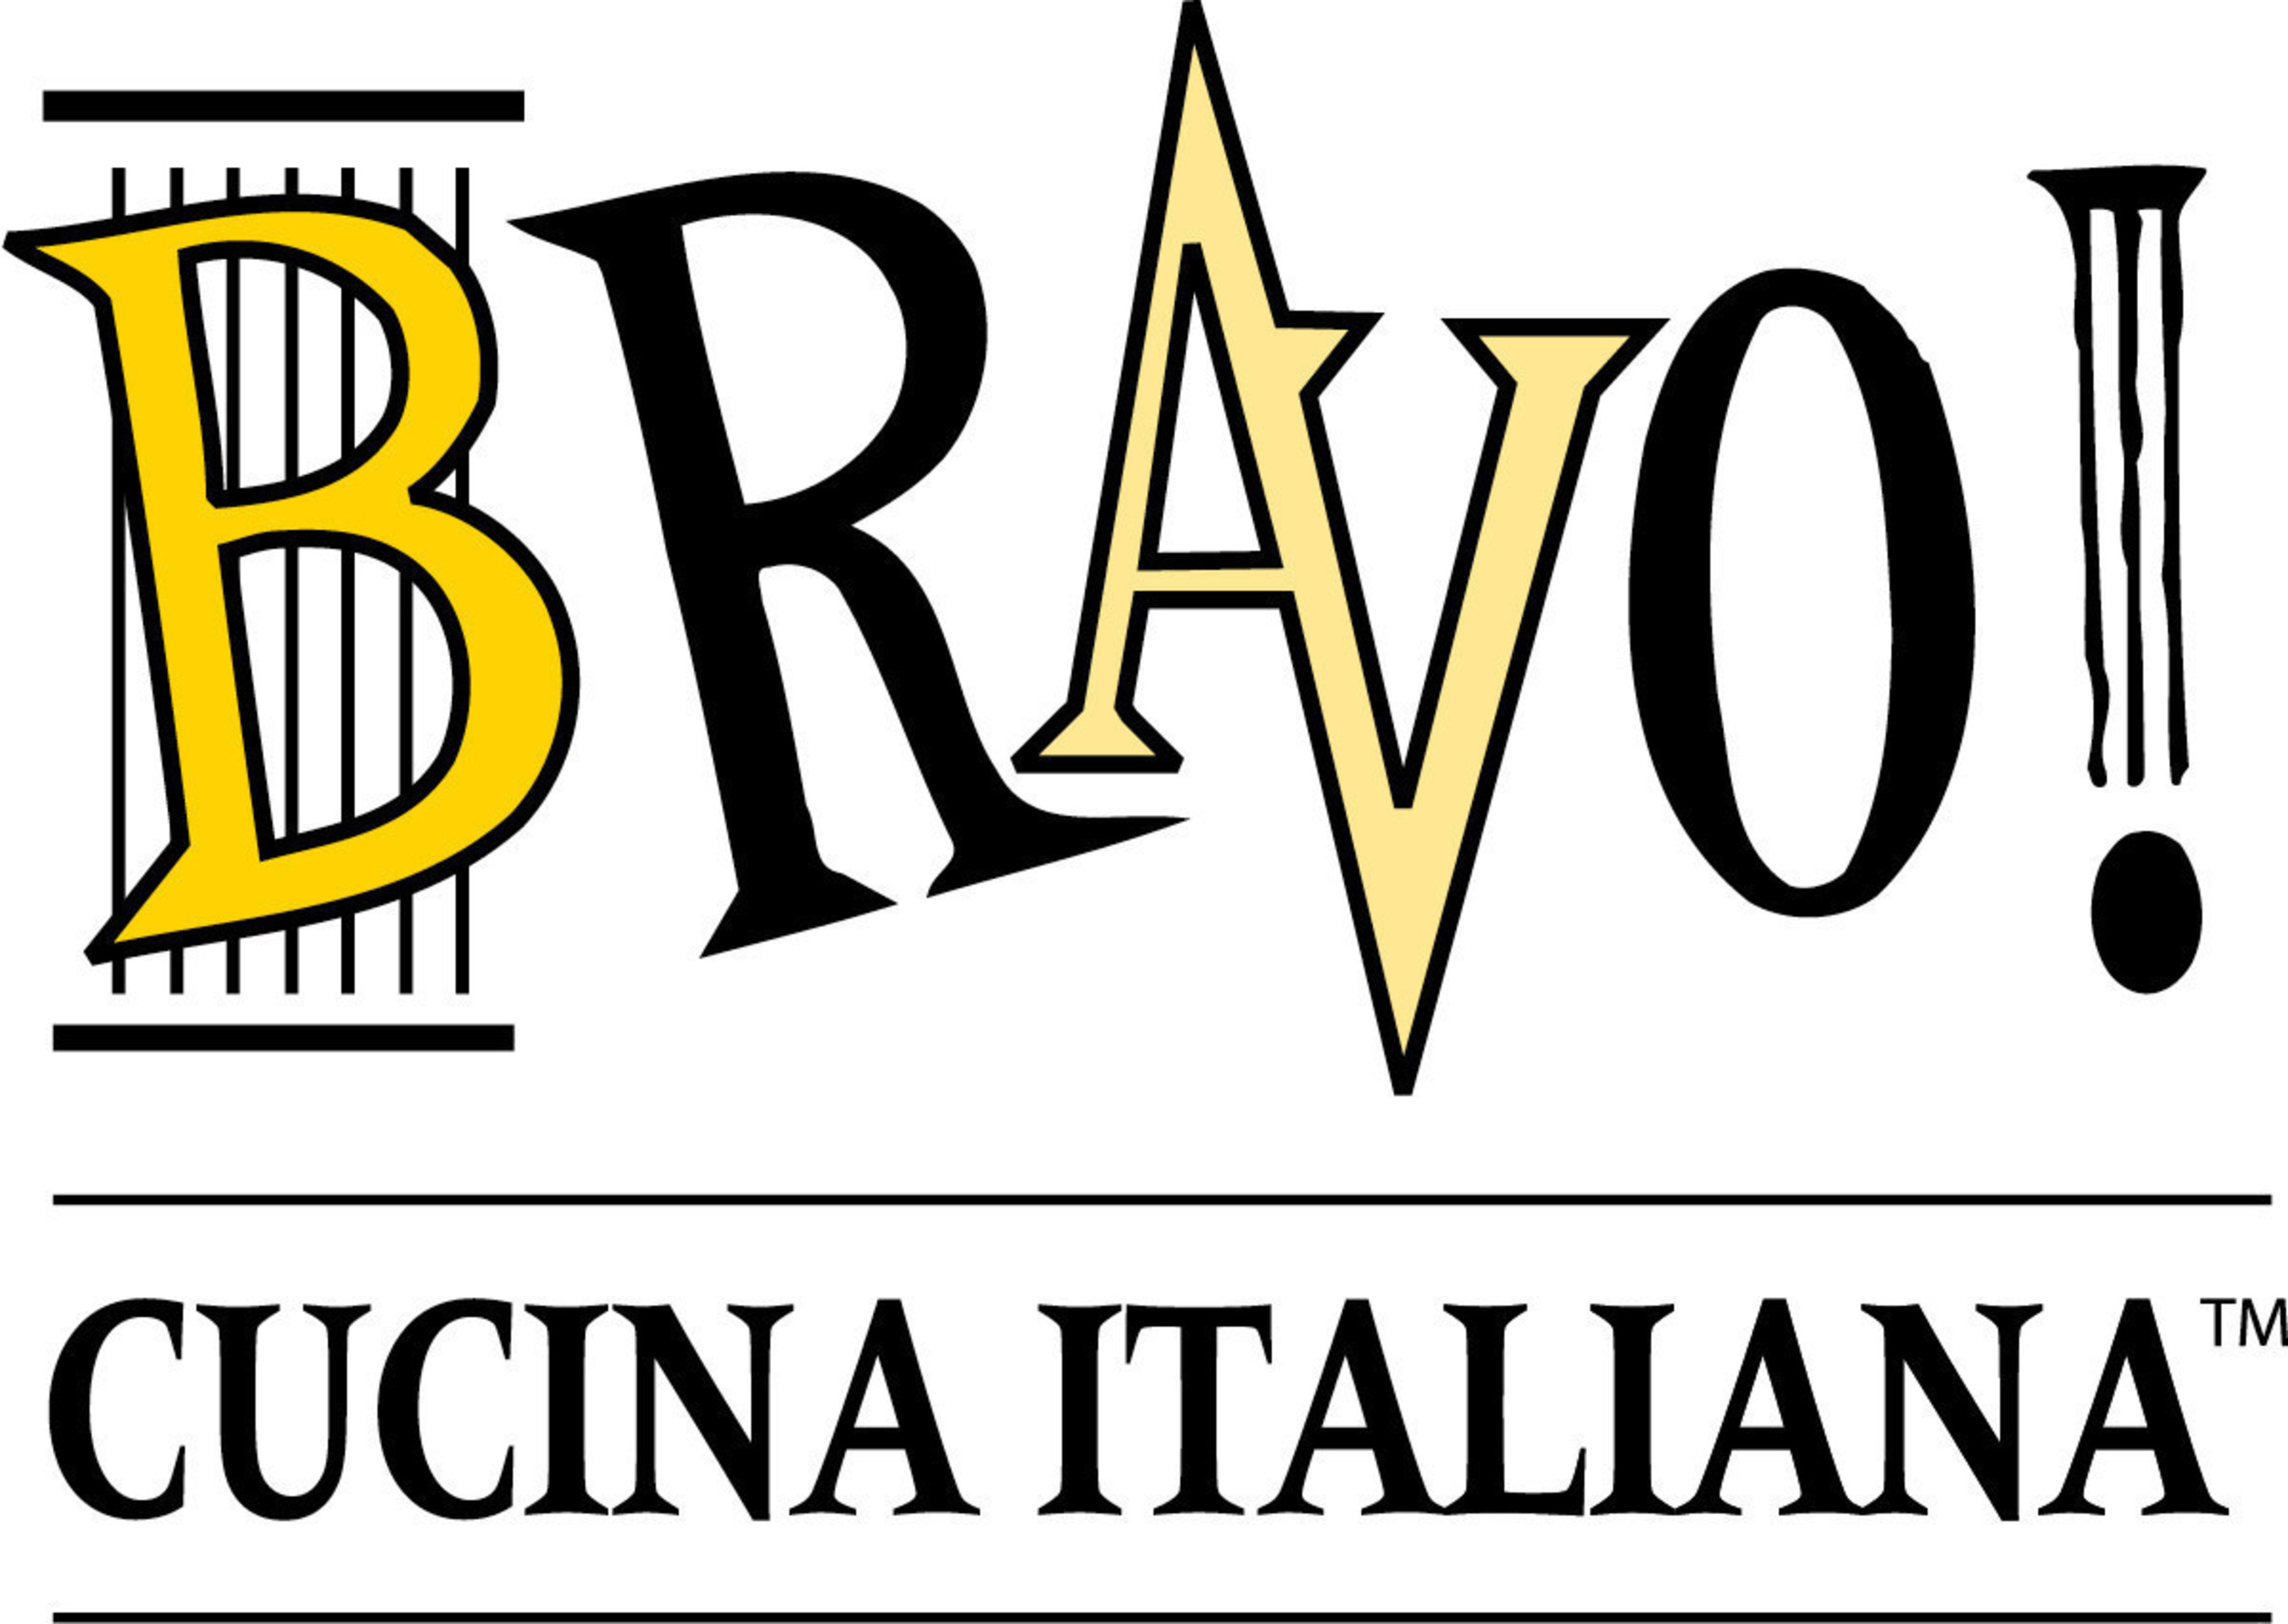 Cucina Italiana Tv Show Bravo Cucina Italiana Restaurants Across The Nation Celebrate